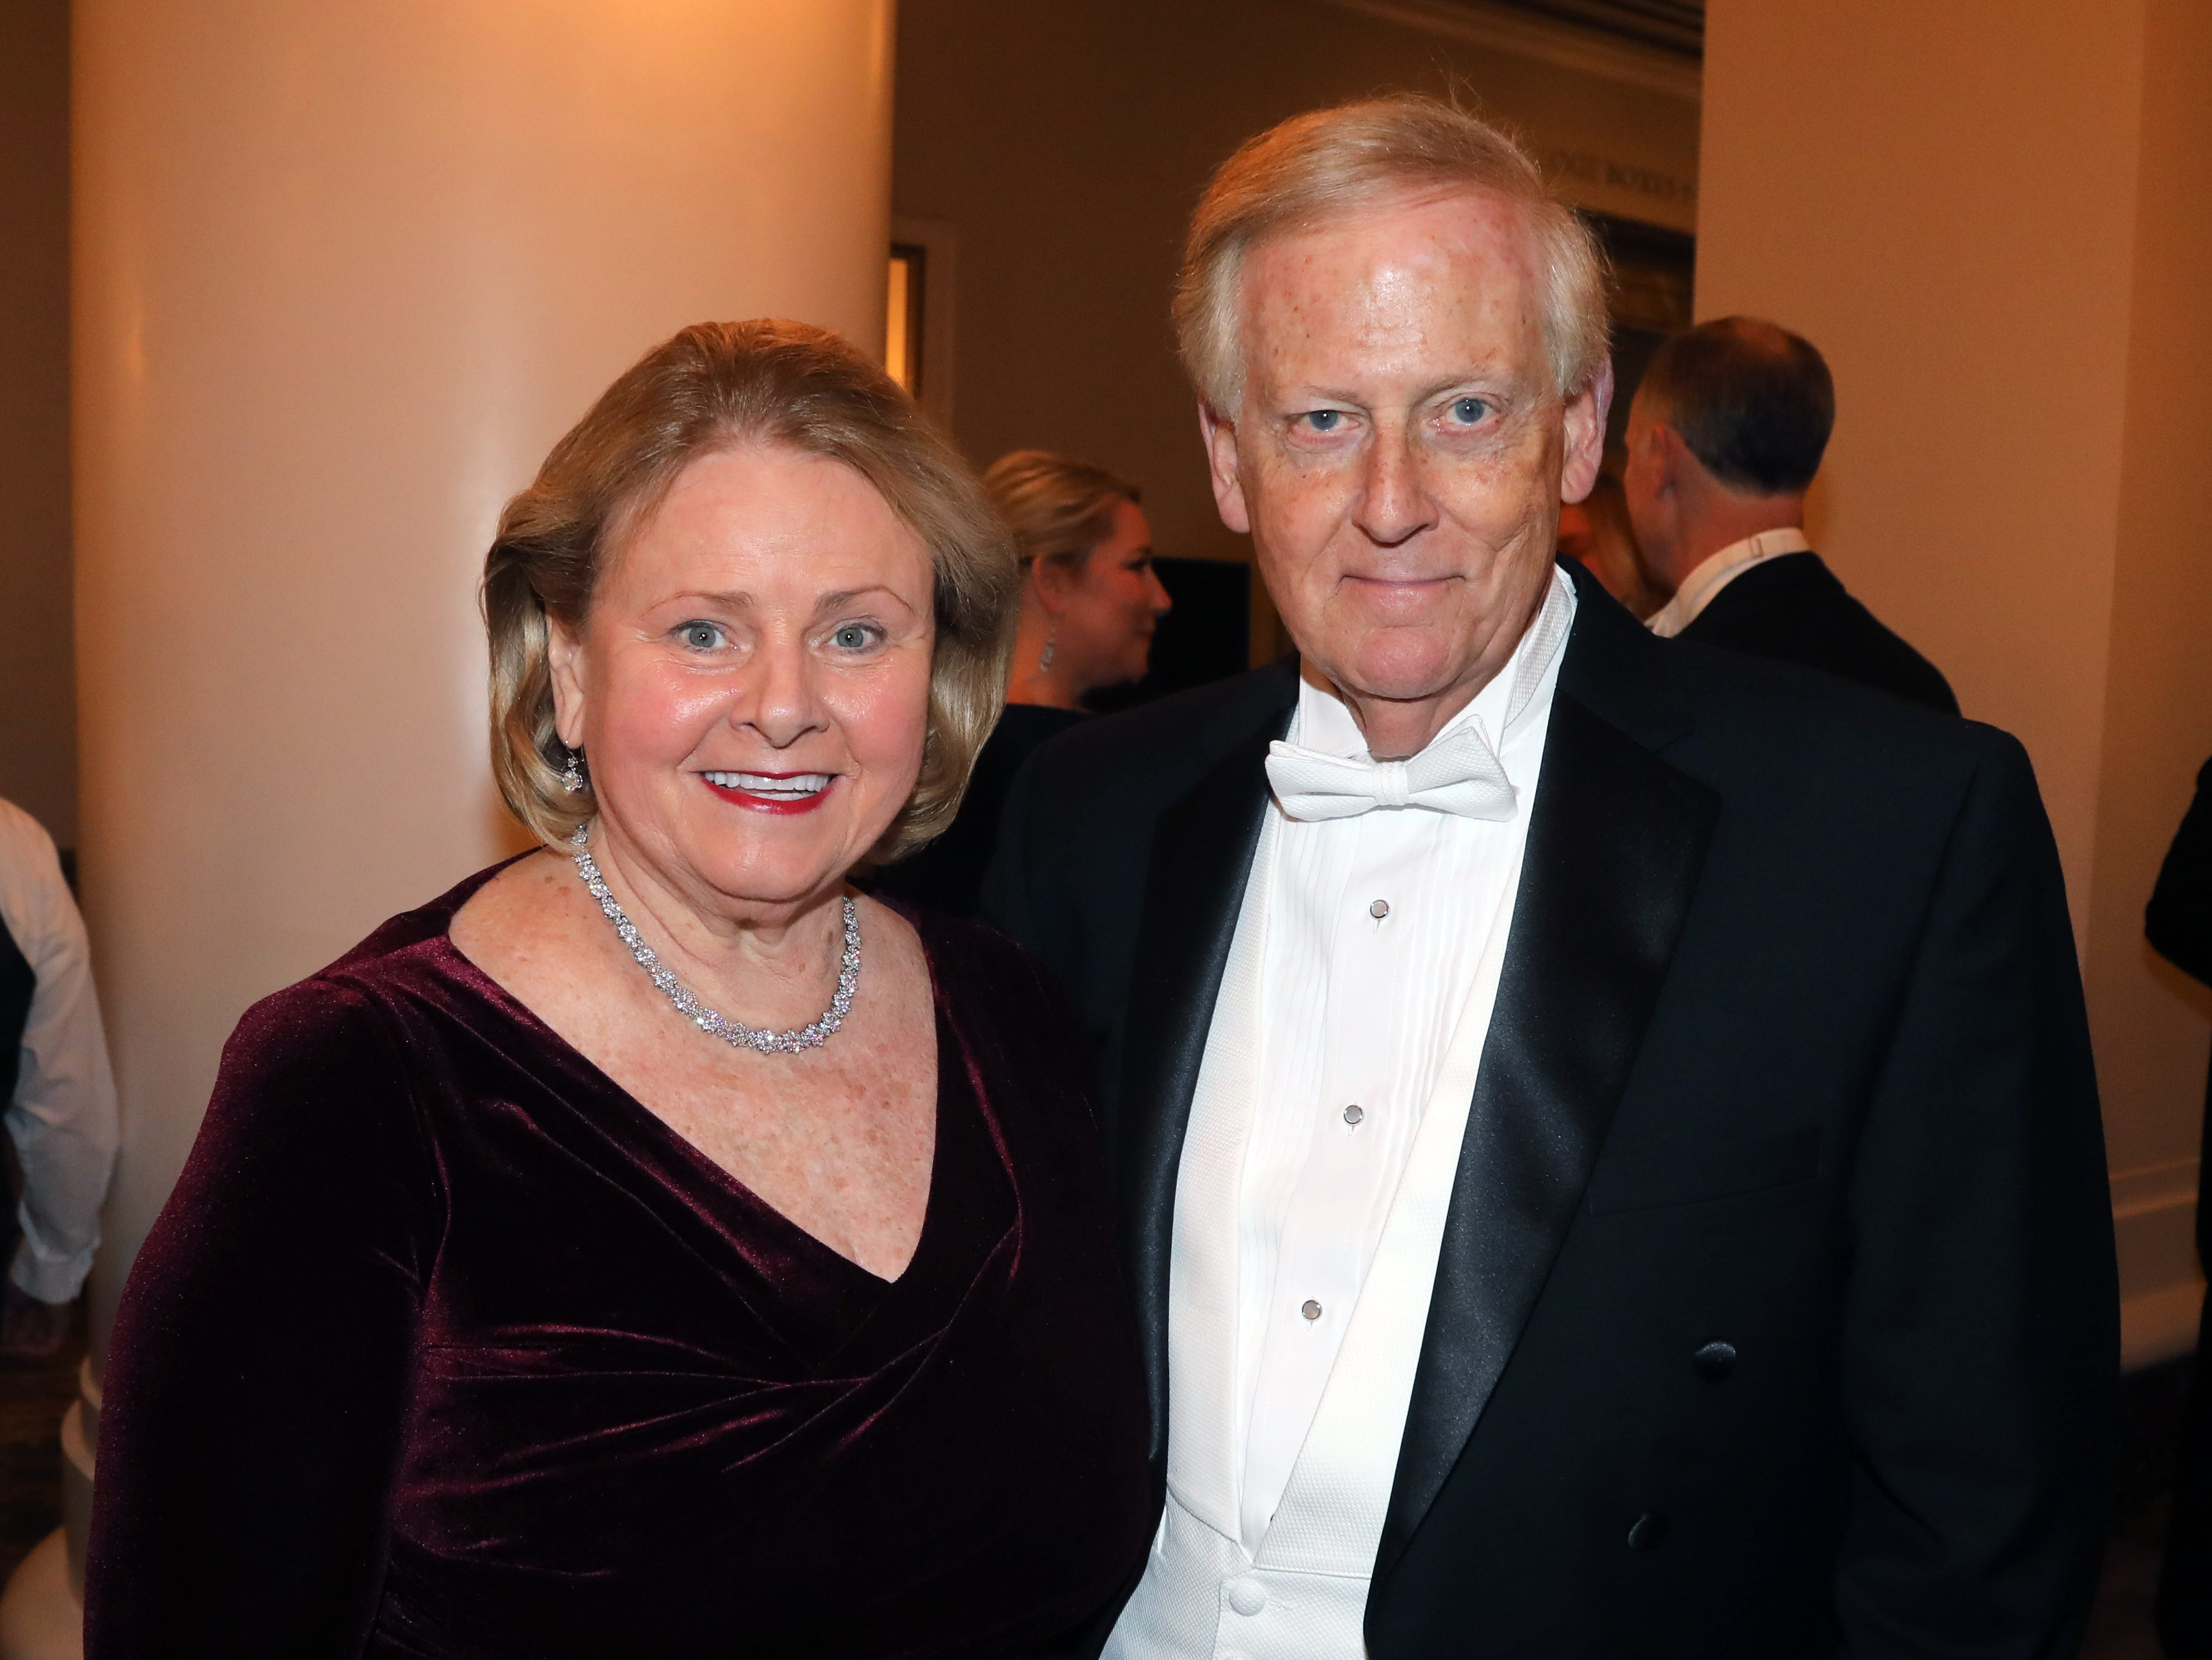 Janice and Randy LaGasse at the 34th annual Symphony Ball on Saturday, December 8, 2018, at Schermerhorn Symphony Center.